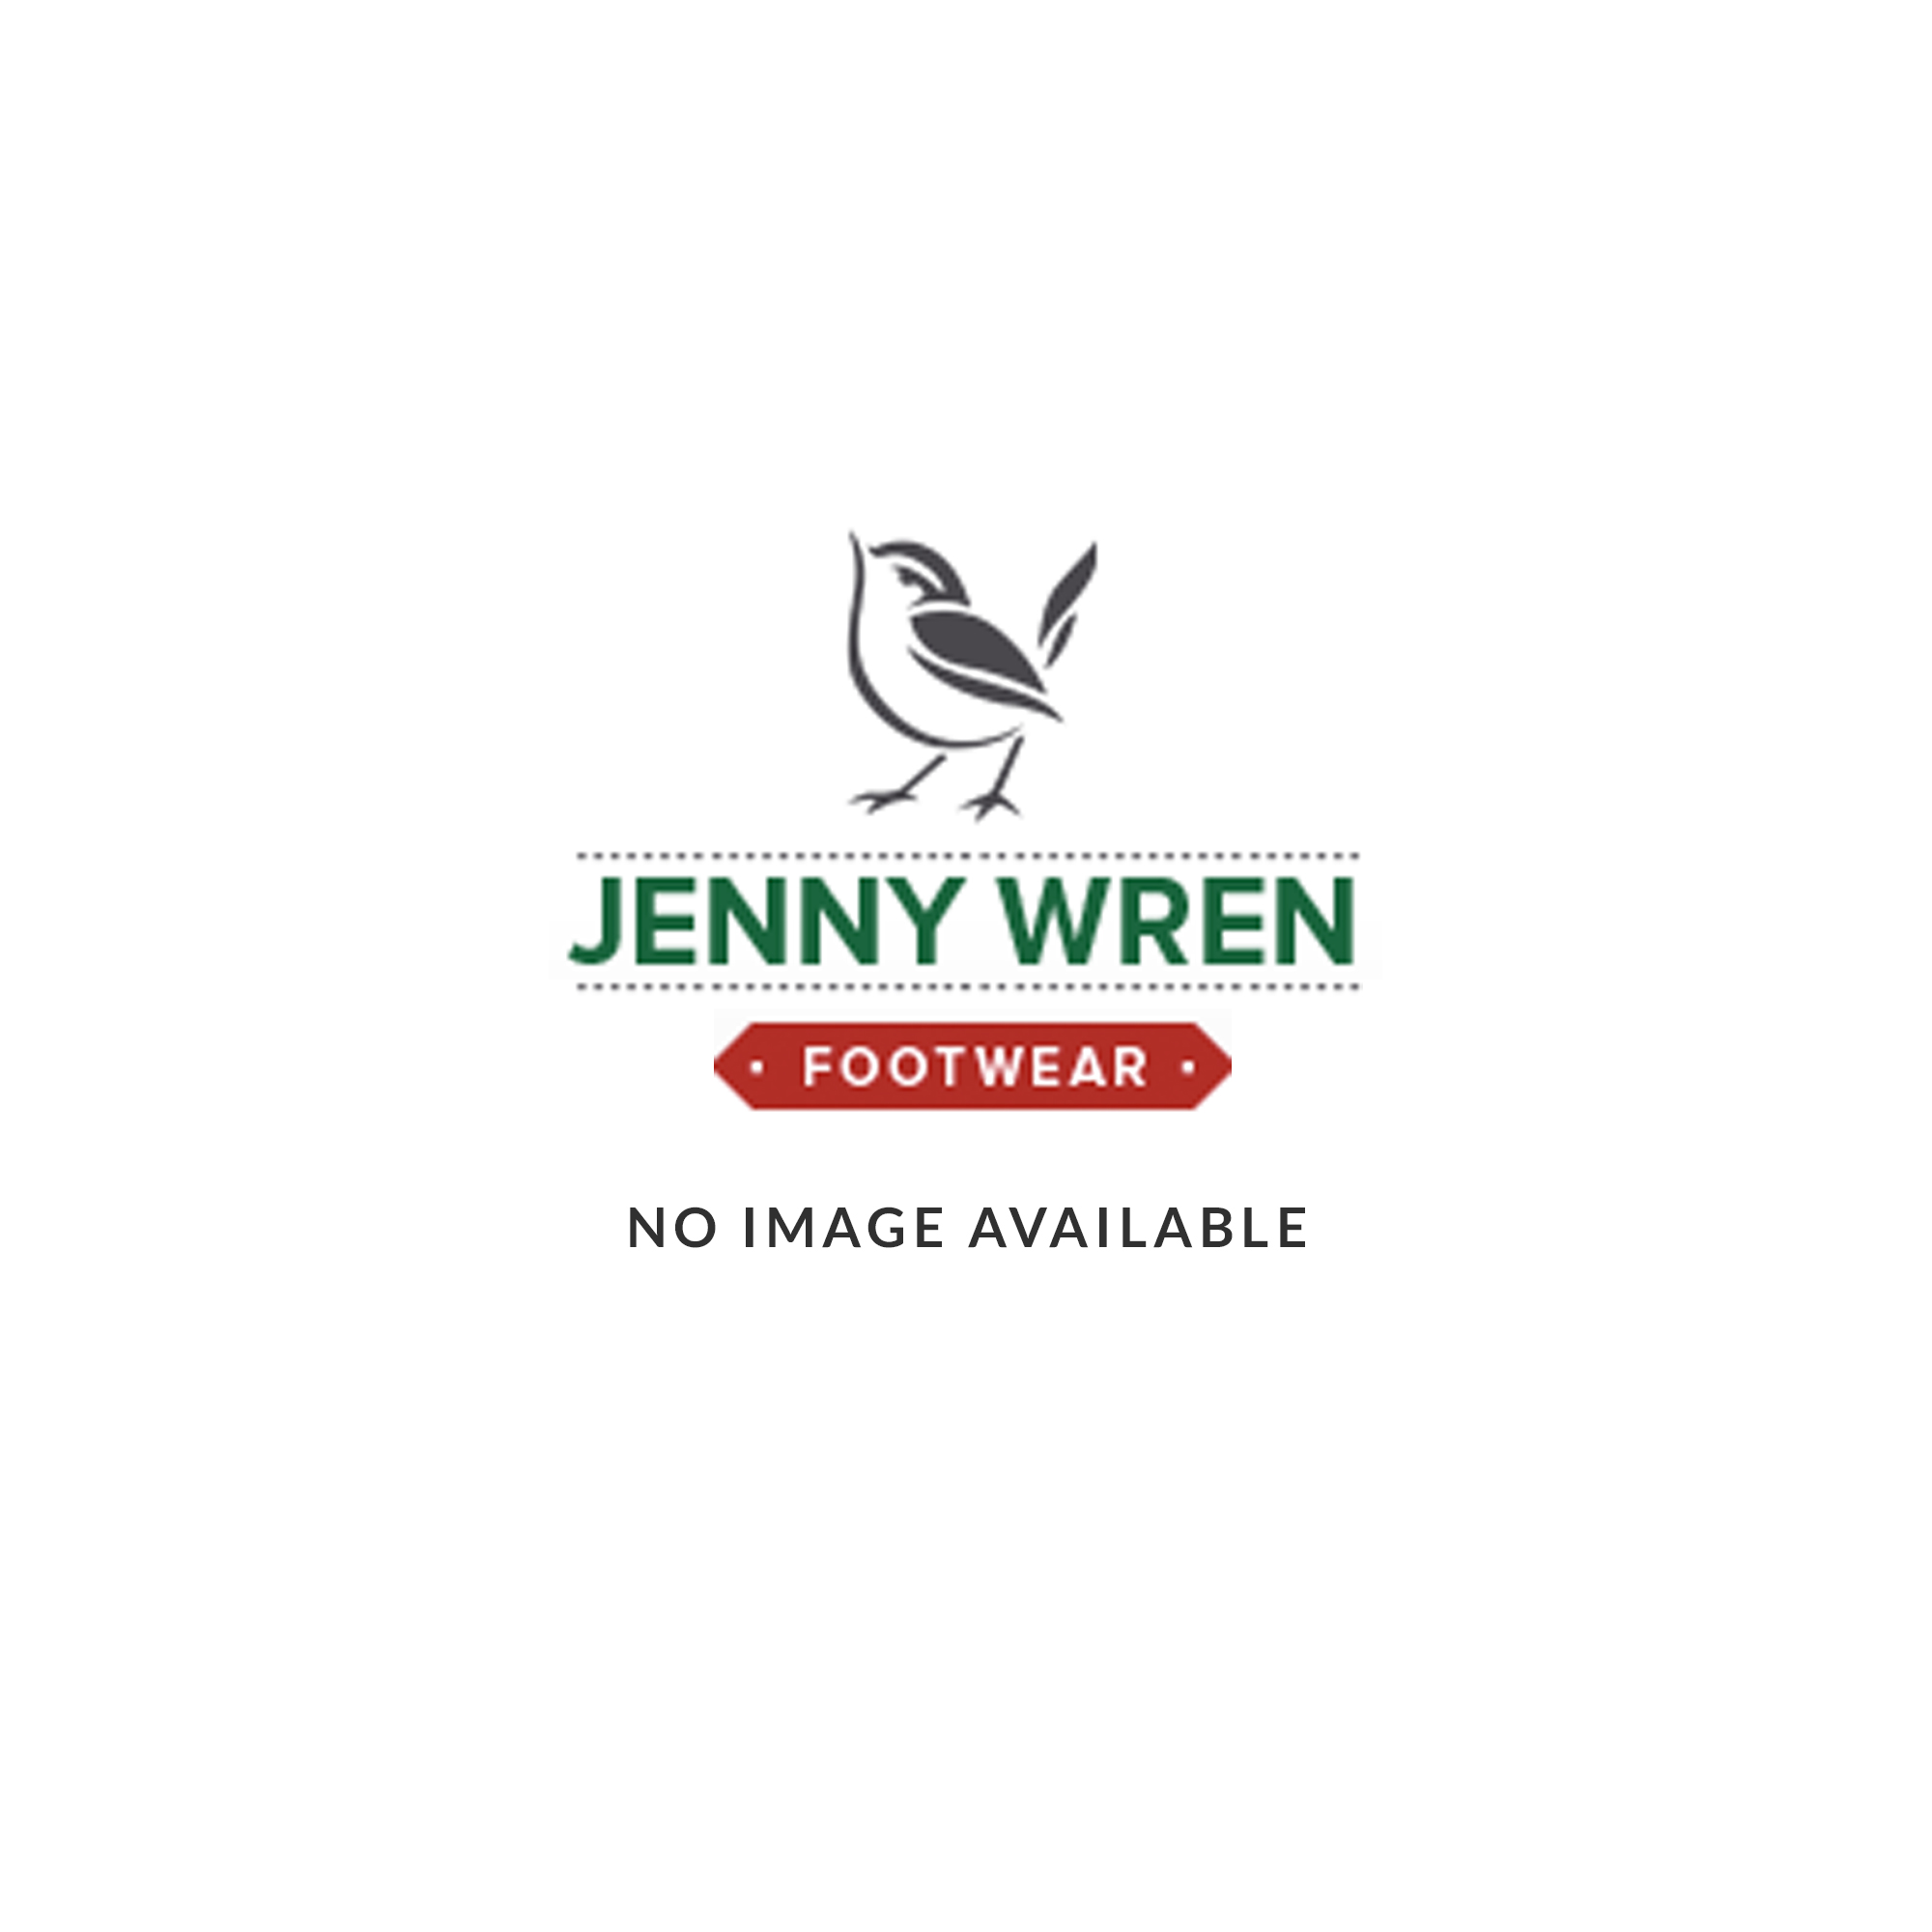 High heel boots are available in a variety of looks: over the knee, platform, or styles with a practical block heel for surefootedness - no more getting stuck in the snow. Looking for women's high heeled boots in a size 9 or 10 or with a wide calf?